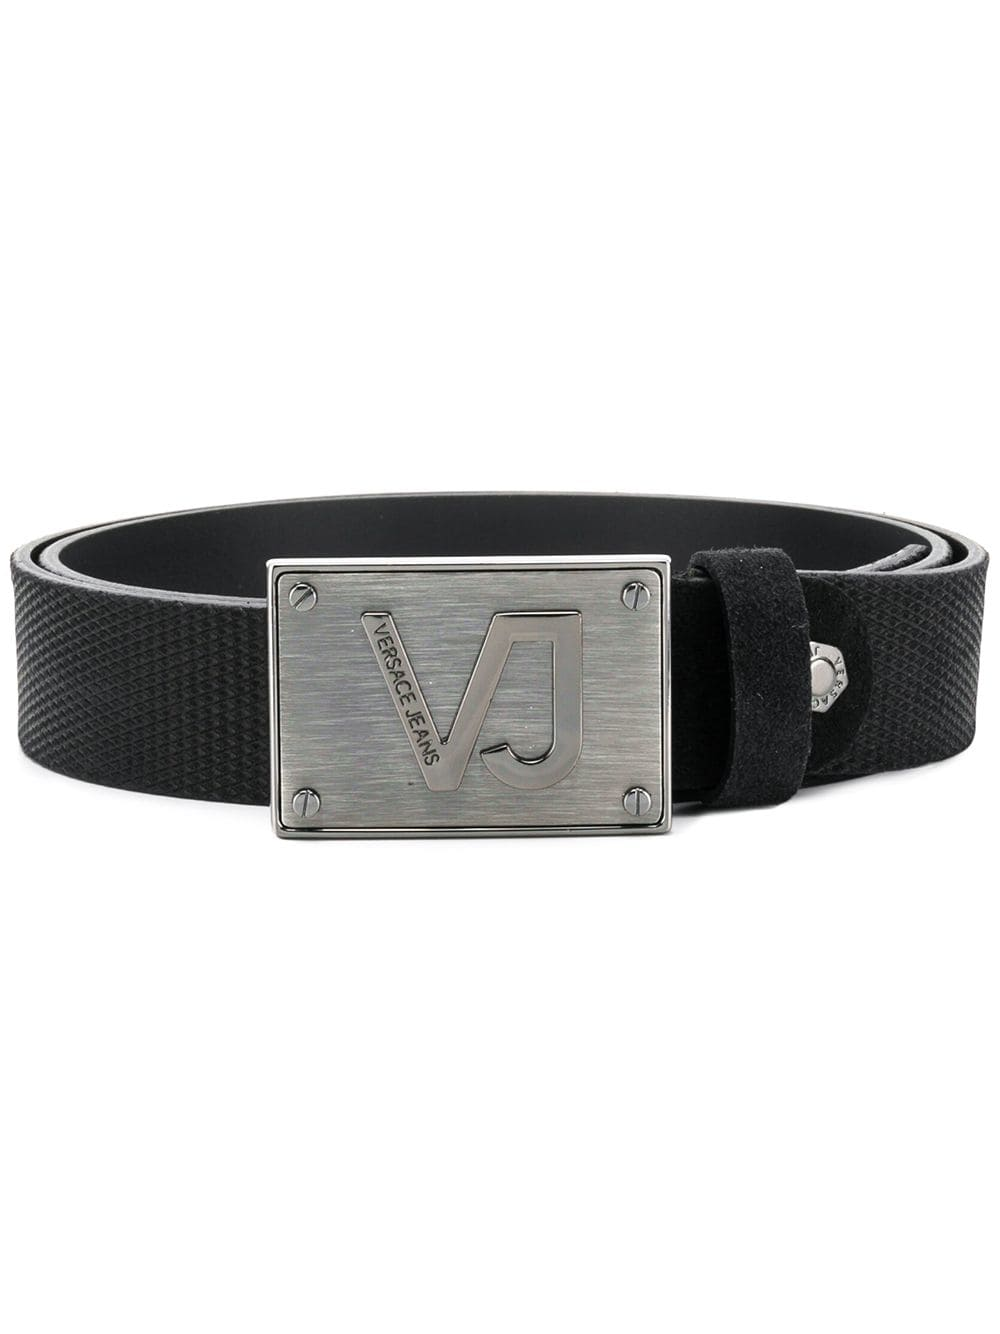 Reversible Stealth Plaque plaque buckle Nike Men/'s Belt nappa leather Belt